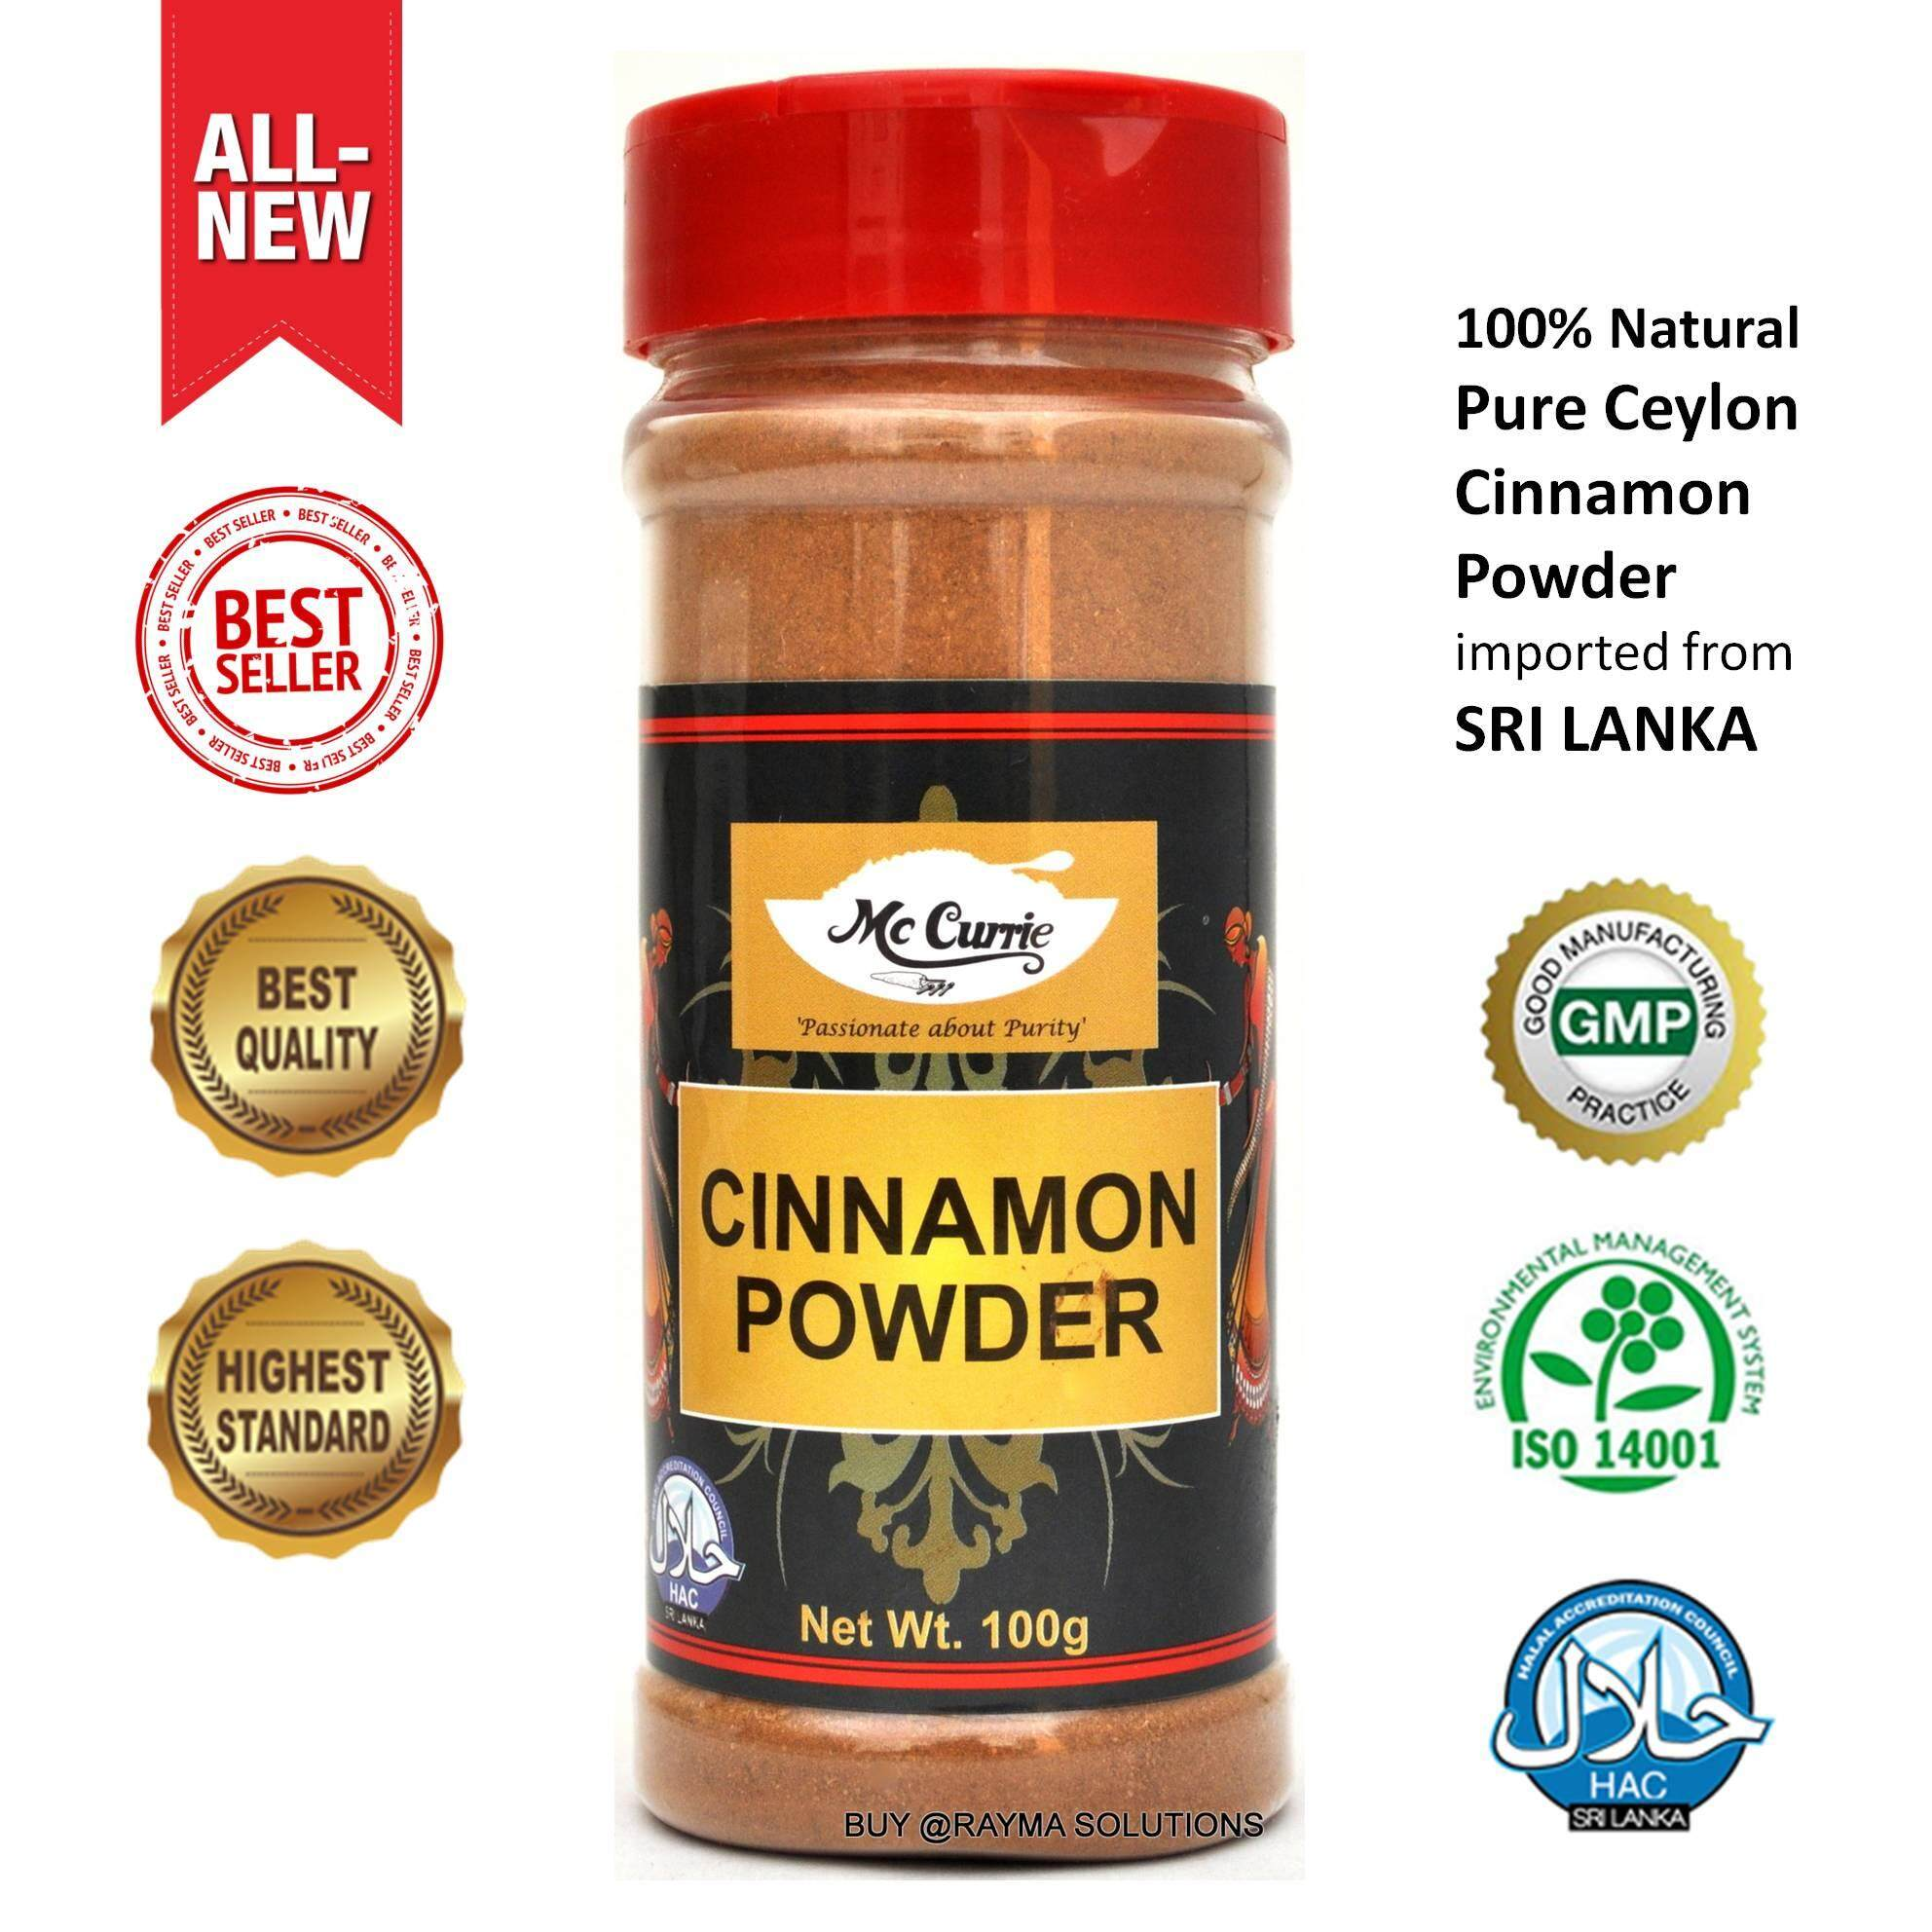 MC CURRIE 100% Natural Premium Ceylon Cinnamon Powder, 100g